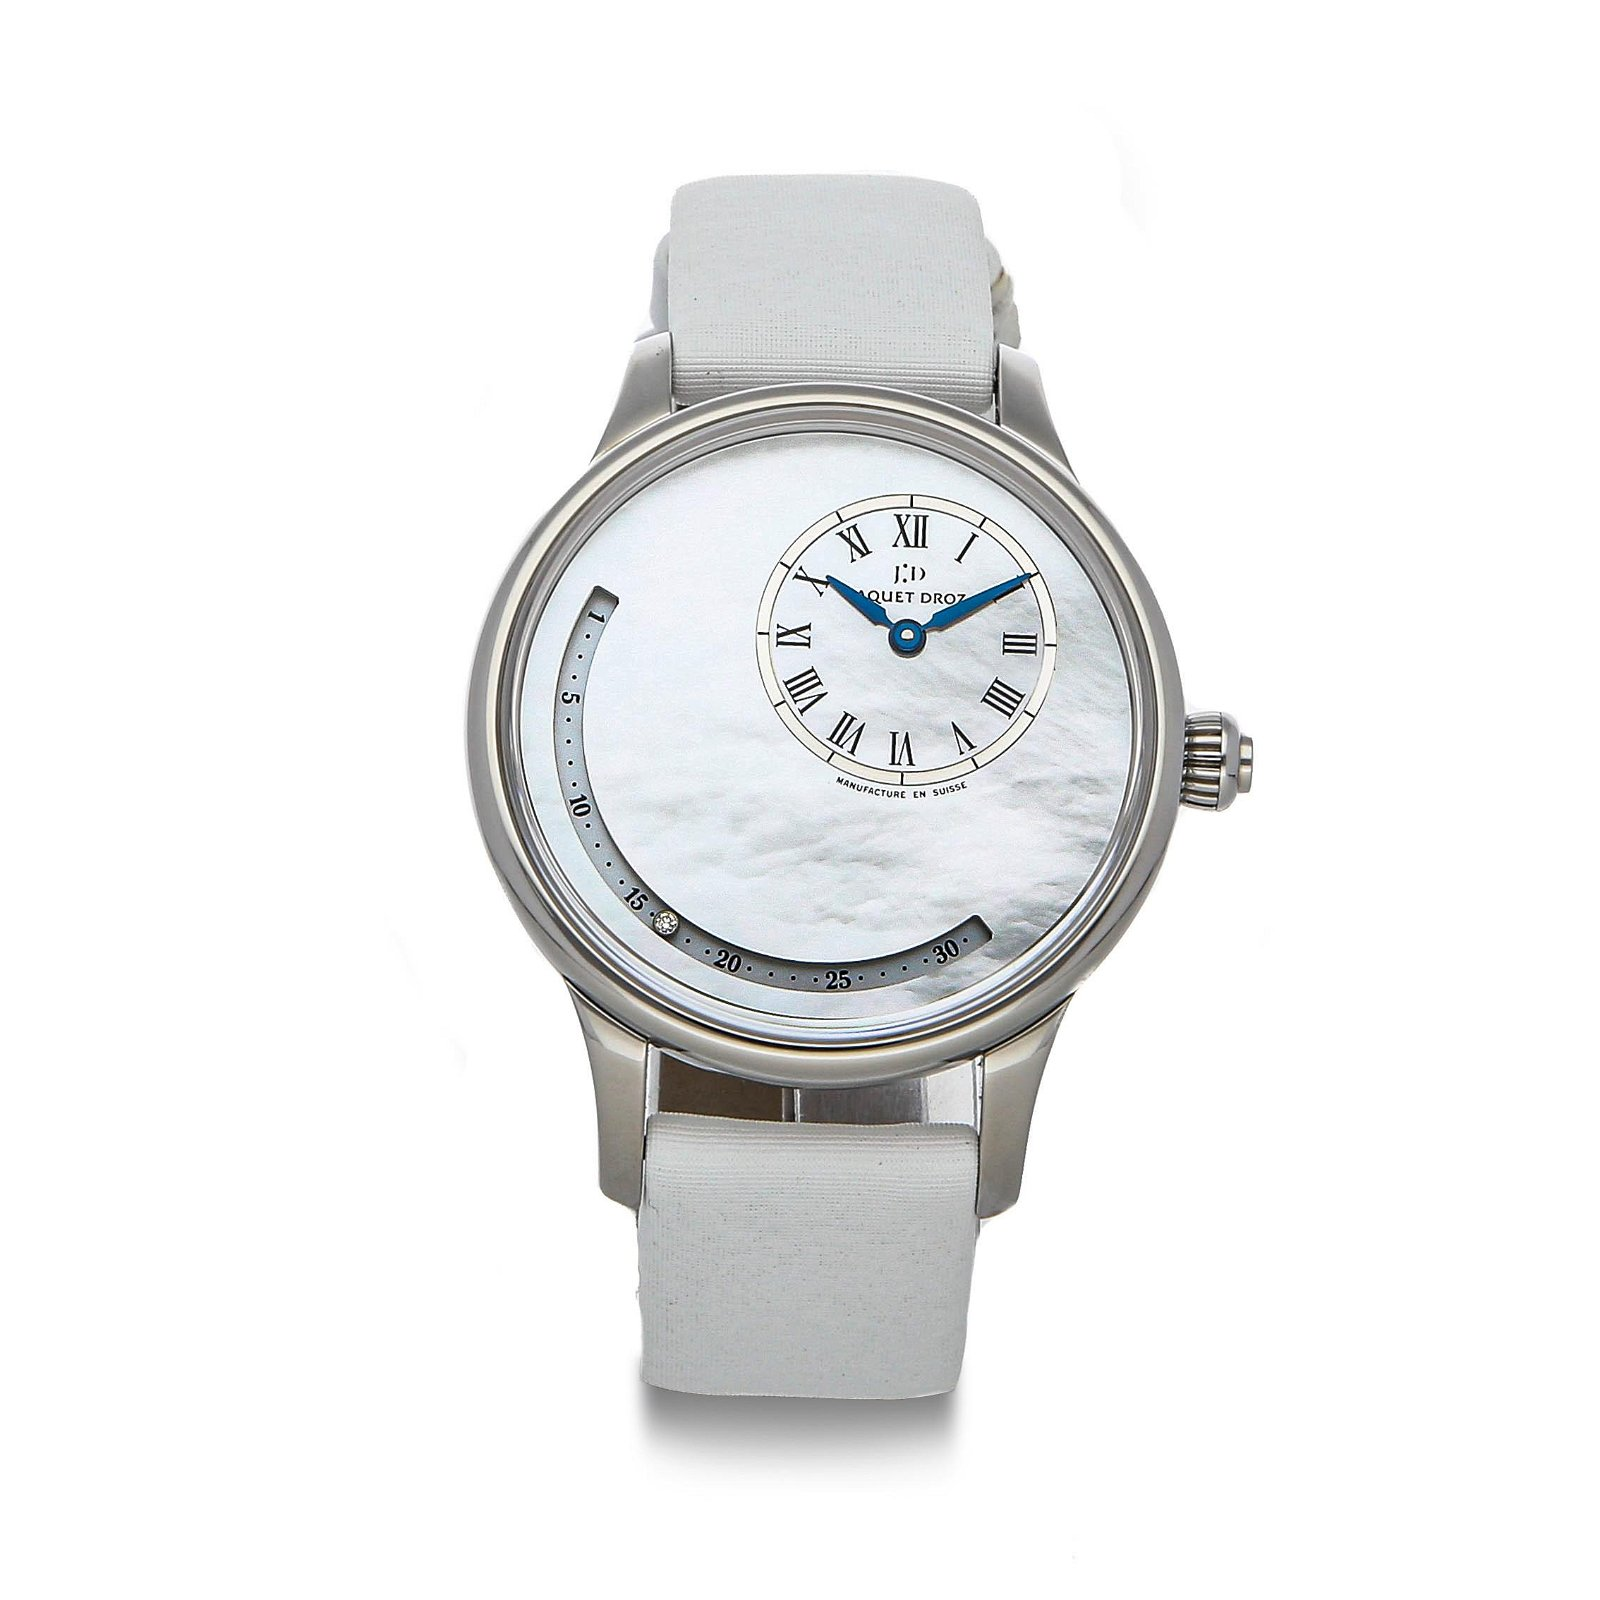 JAQUET DROZ, PETITE HEURE MINUTE DATE ASTRALE,